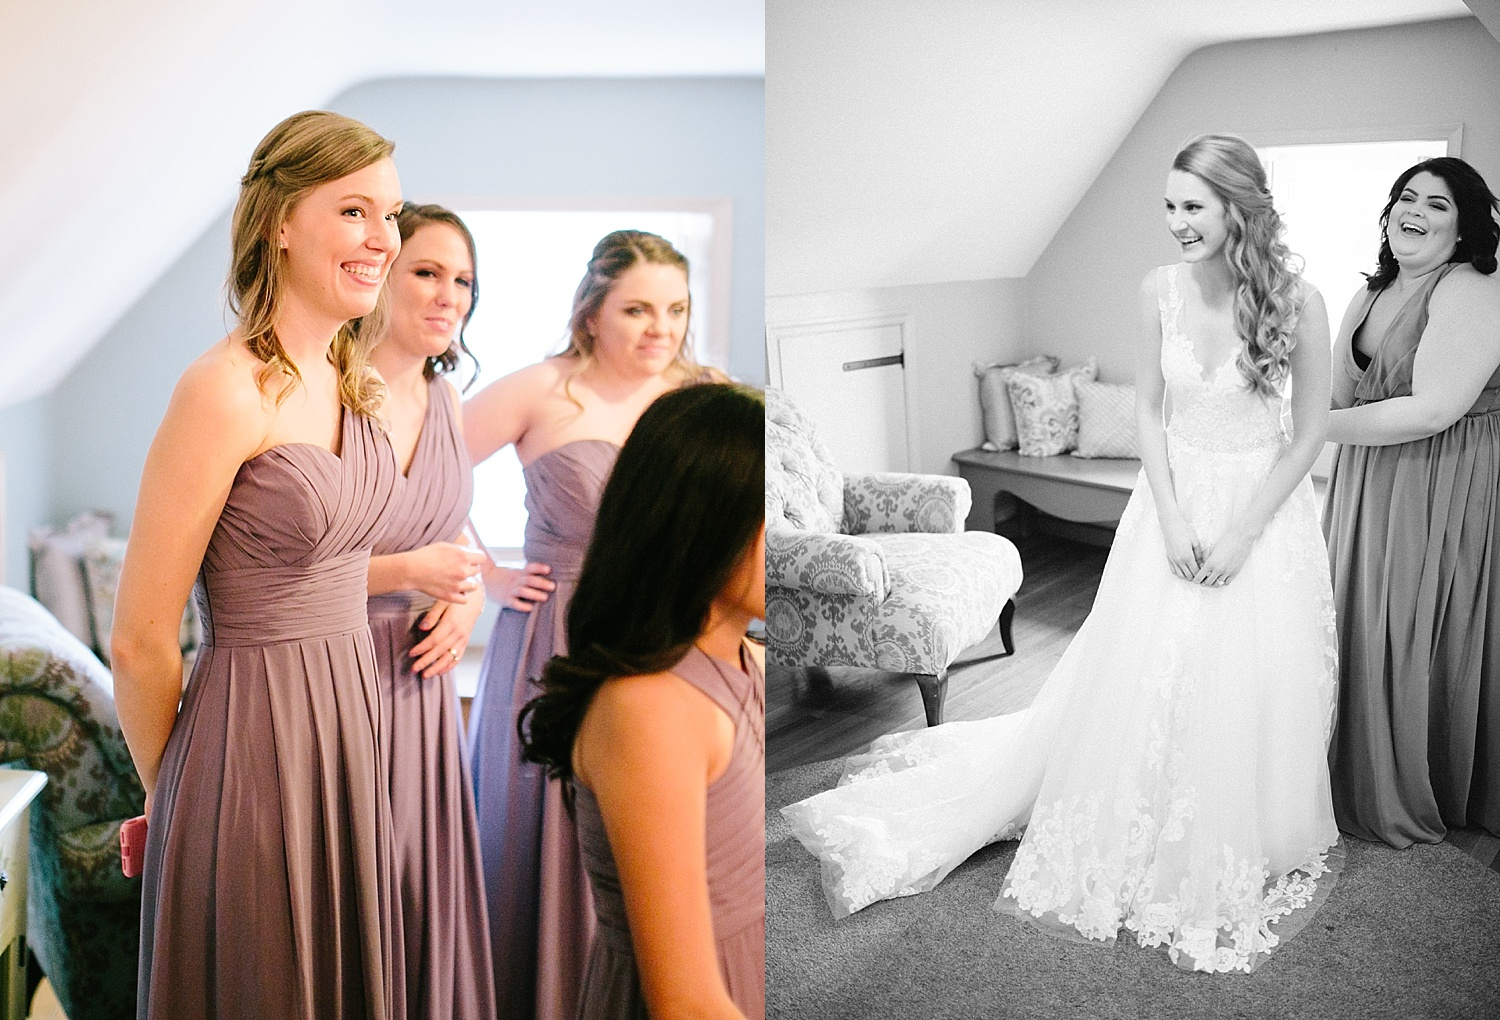 jessdavid_barnonbridge_phoenixville_winter_wedding_image_039.jpg